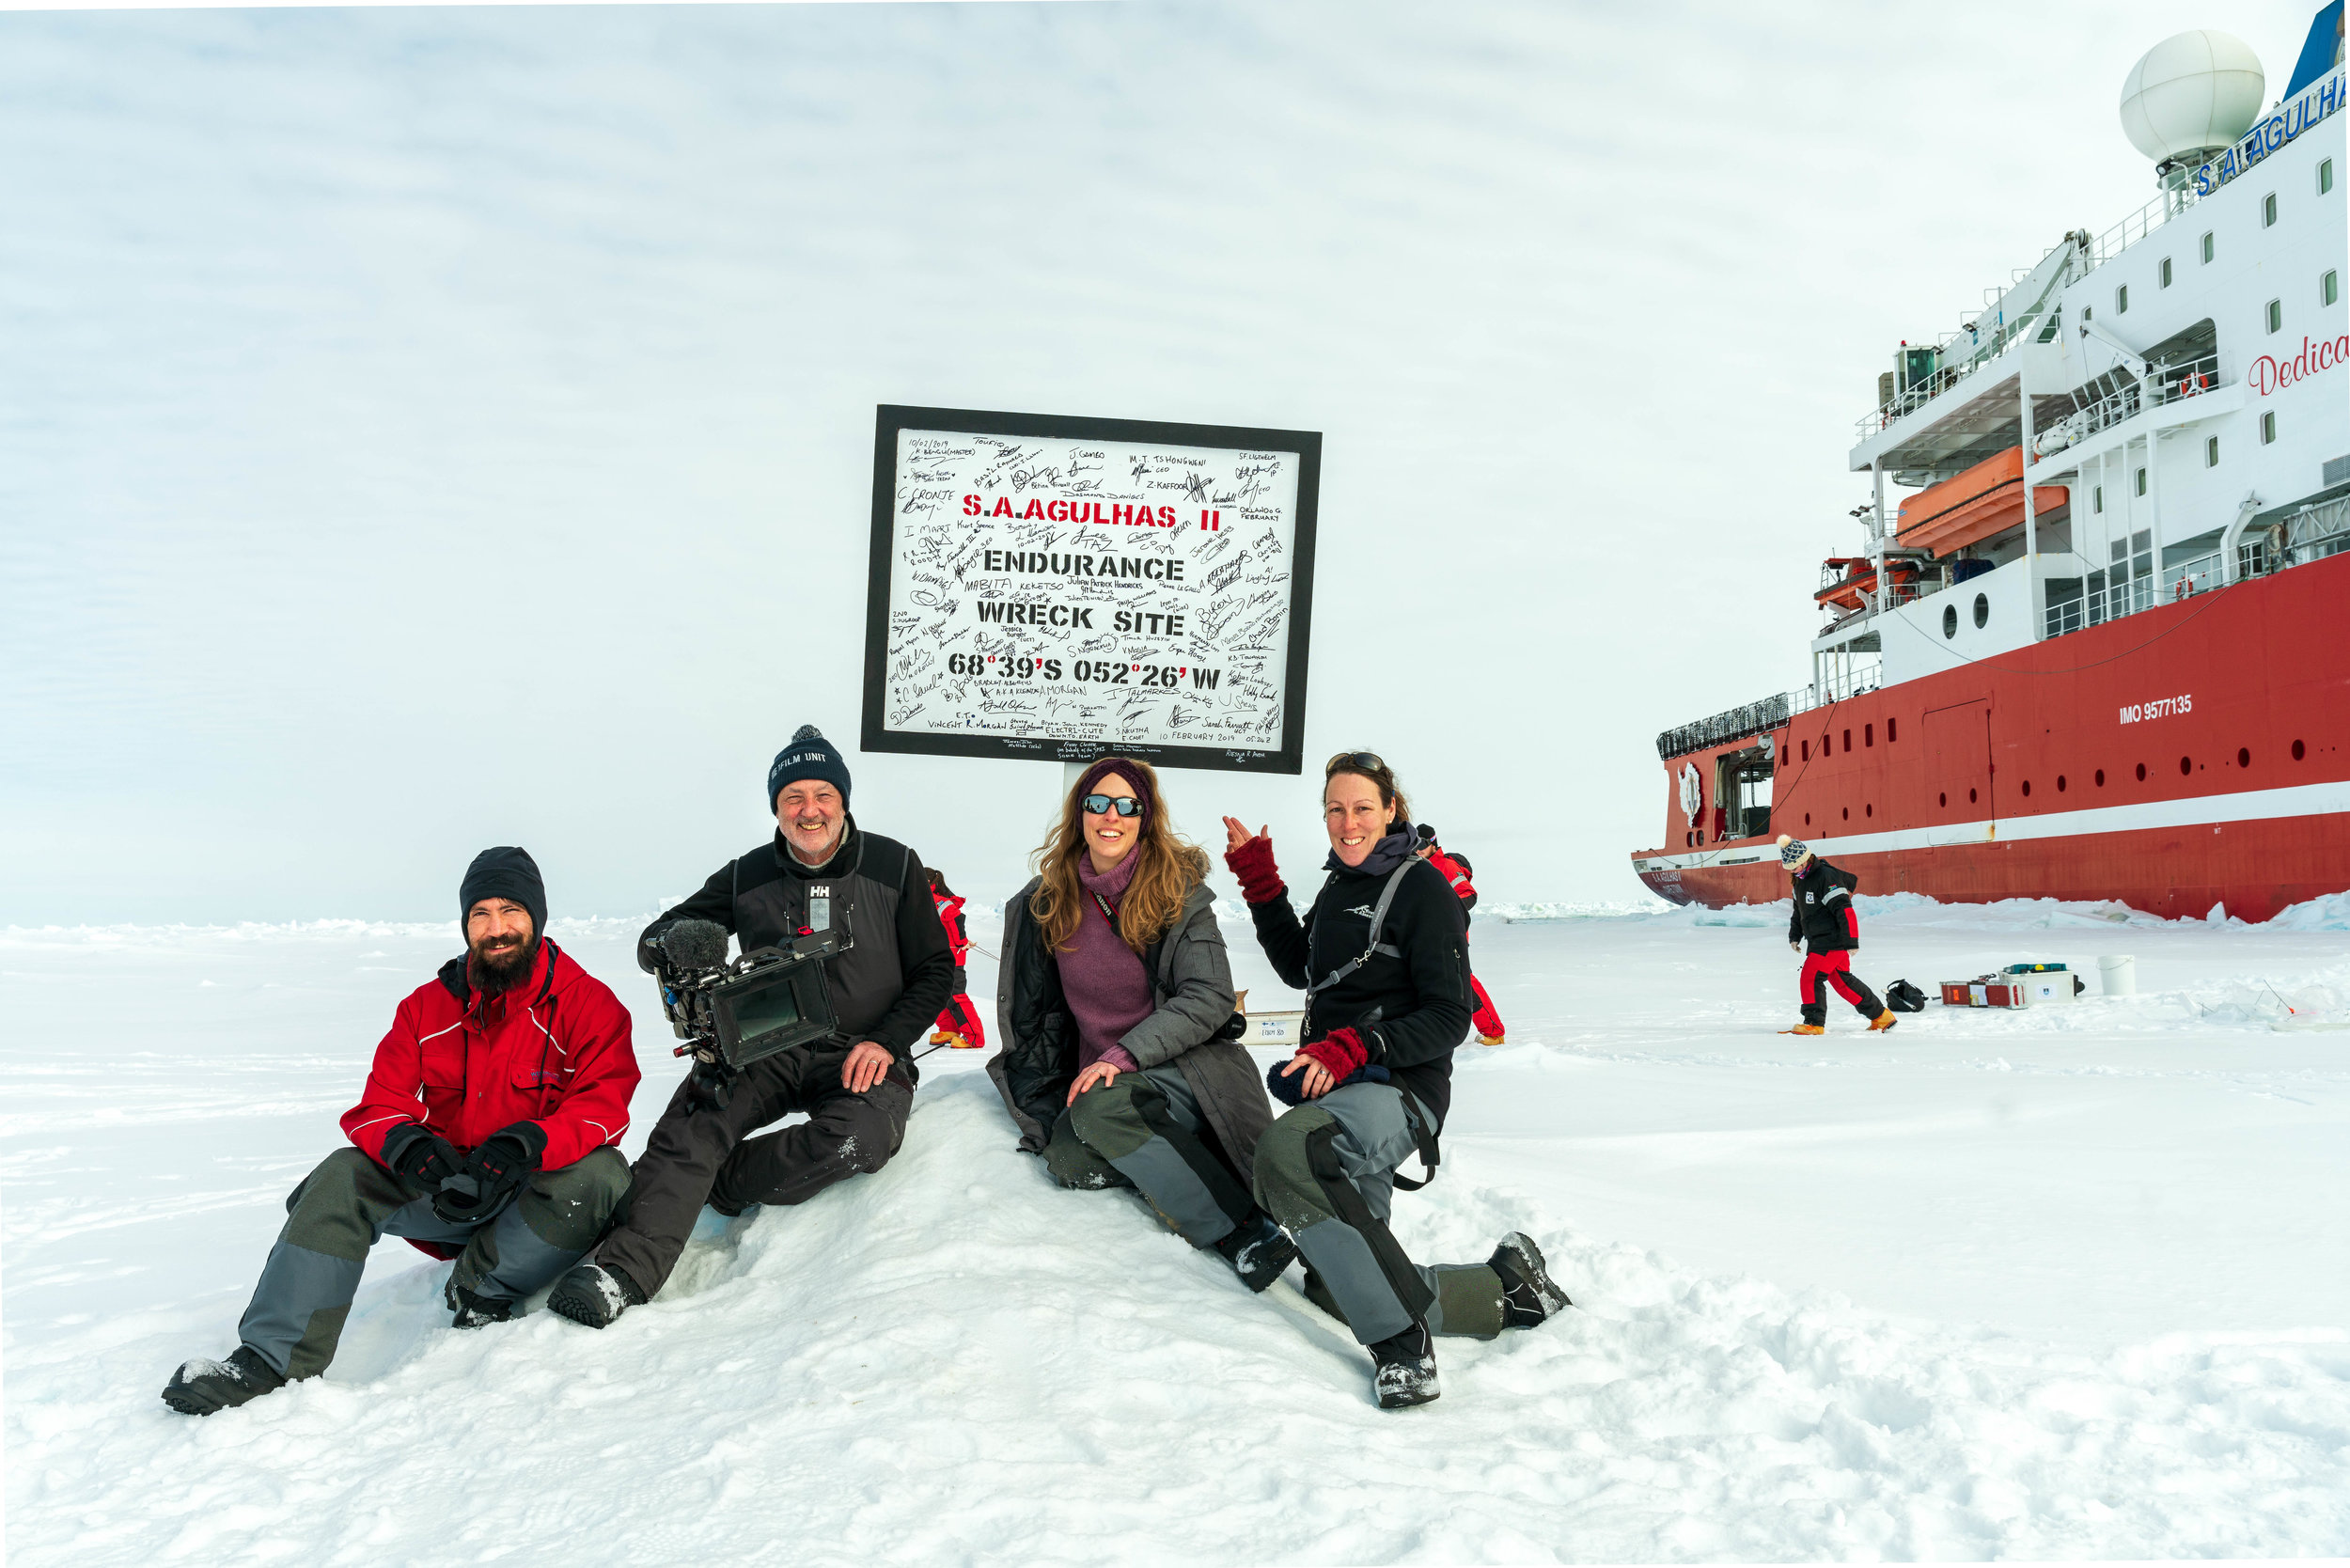 Team Shackleton on the Weddell Sea Expedition 2019  Left to Right: Kobus Loubser, Paul Williams, Olive King, Tamara Stubbs photo credit: helpful person passing by